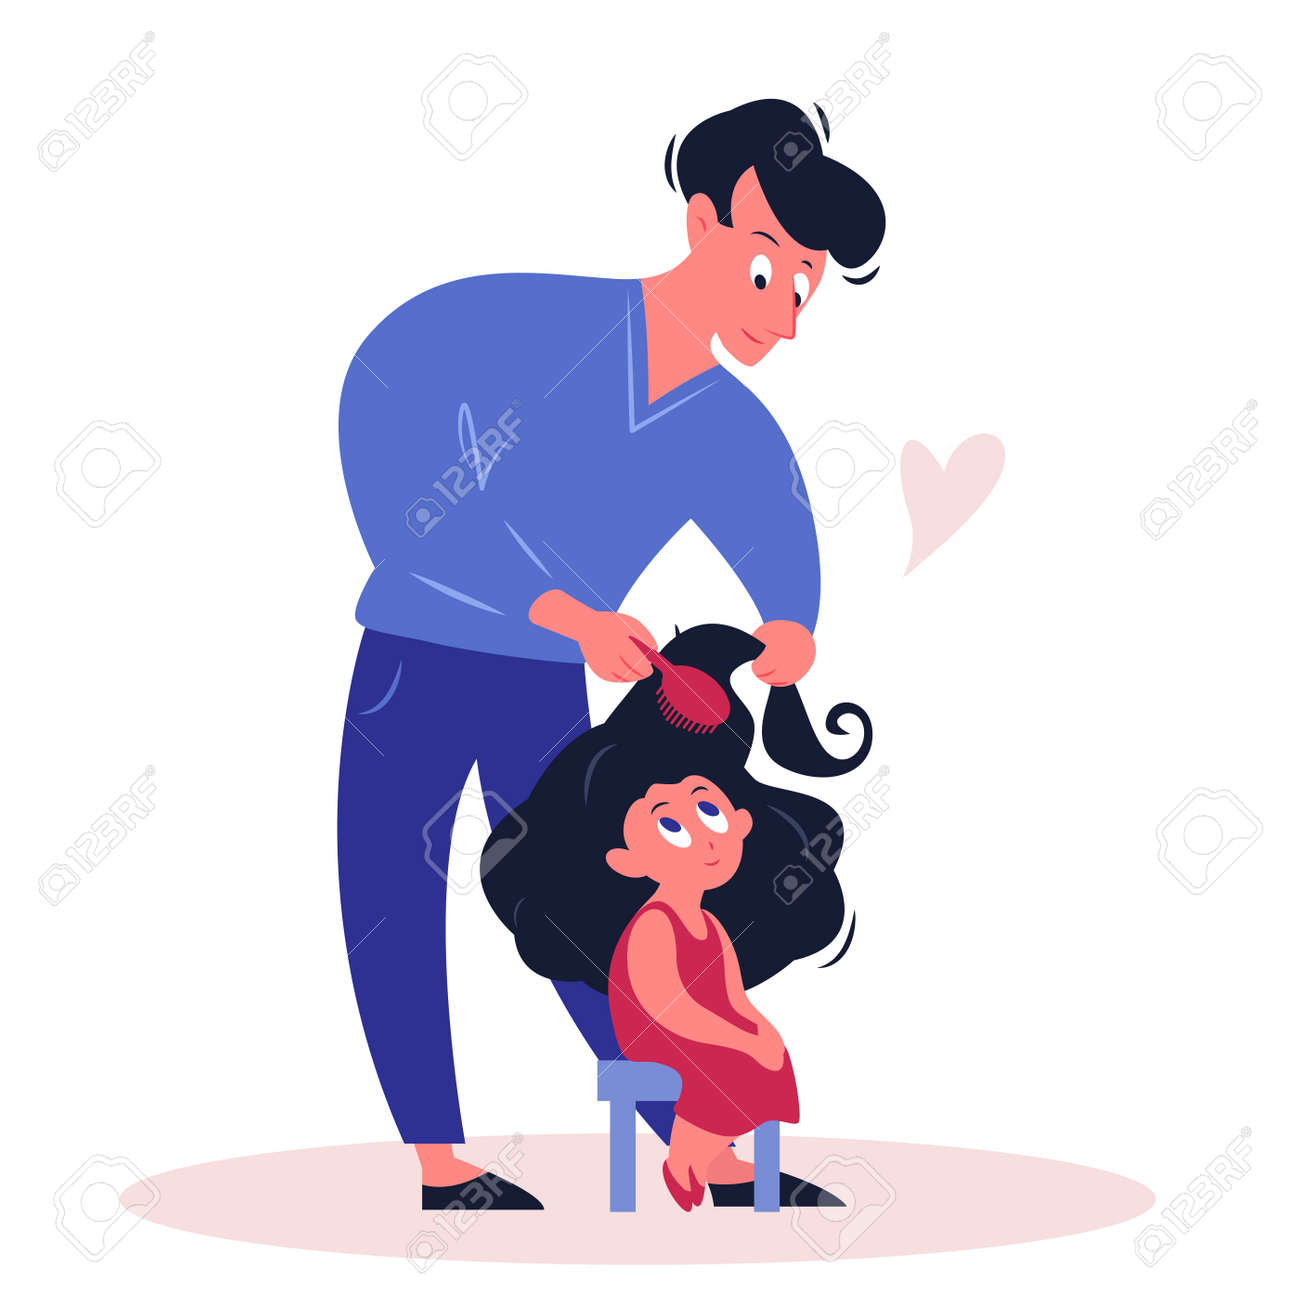 Father time with daughter vector illustration. Cartoon flat happy family characters spending time together, parent dad holding comb, doing hairstyle to cute girl. Fathers day concept isolated on white - 151954099